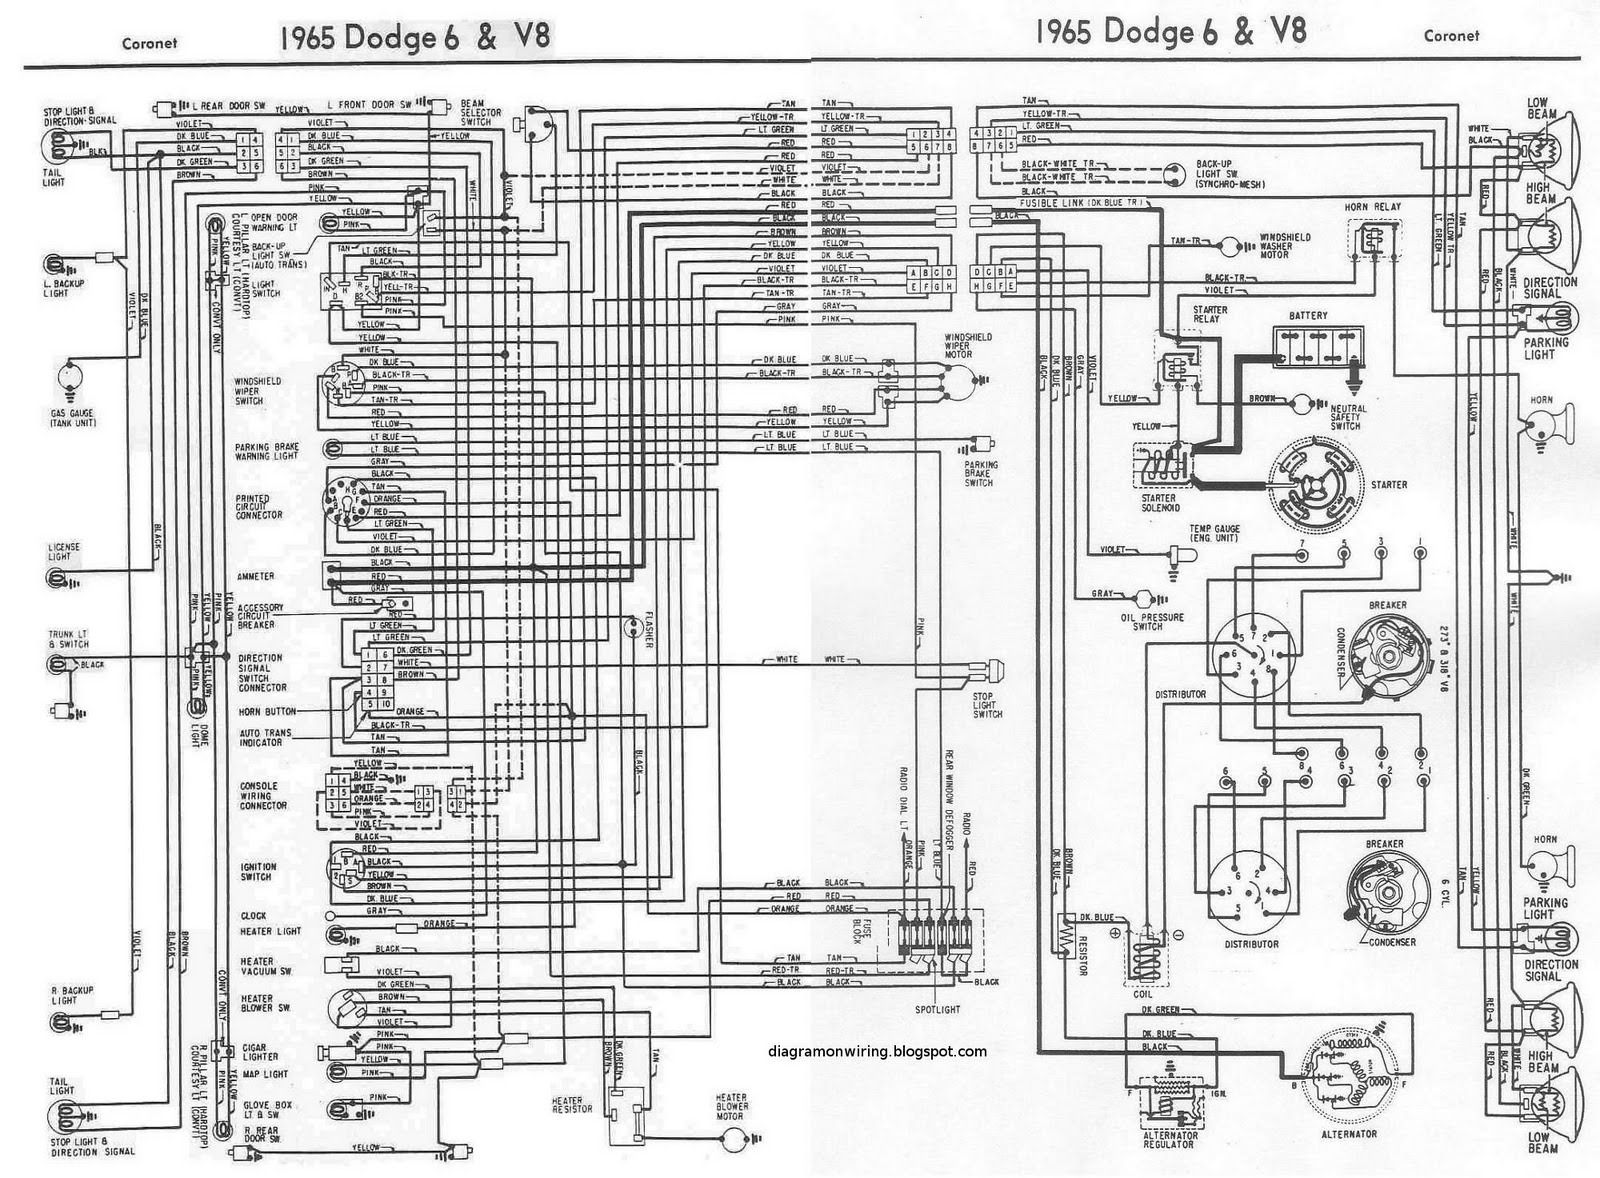 69 dart wiring diagram wiring diagramduster wiring diagram in addition 1971 dodge dart wiring diagram1969 dodge dart wiring diagram online wiring